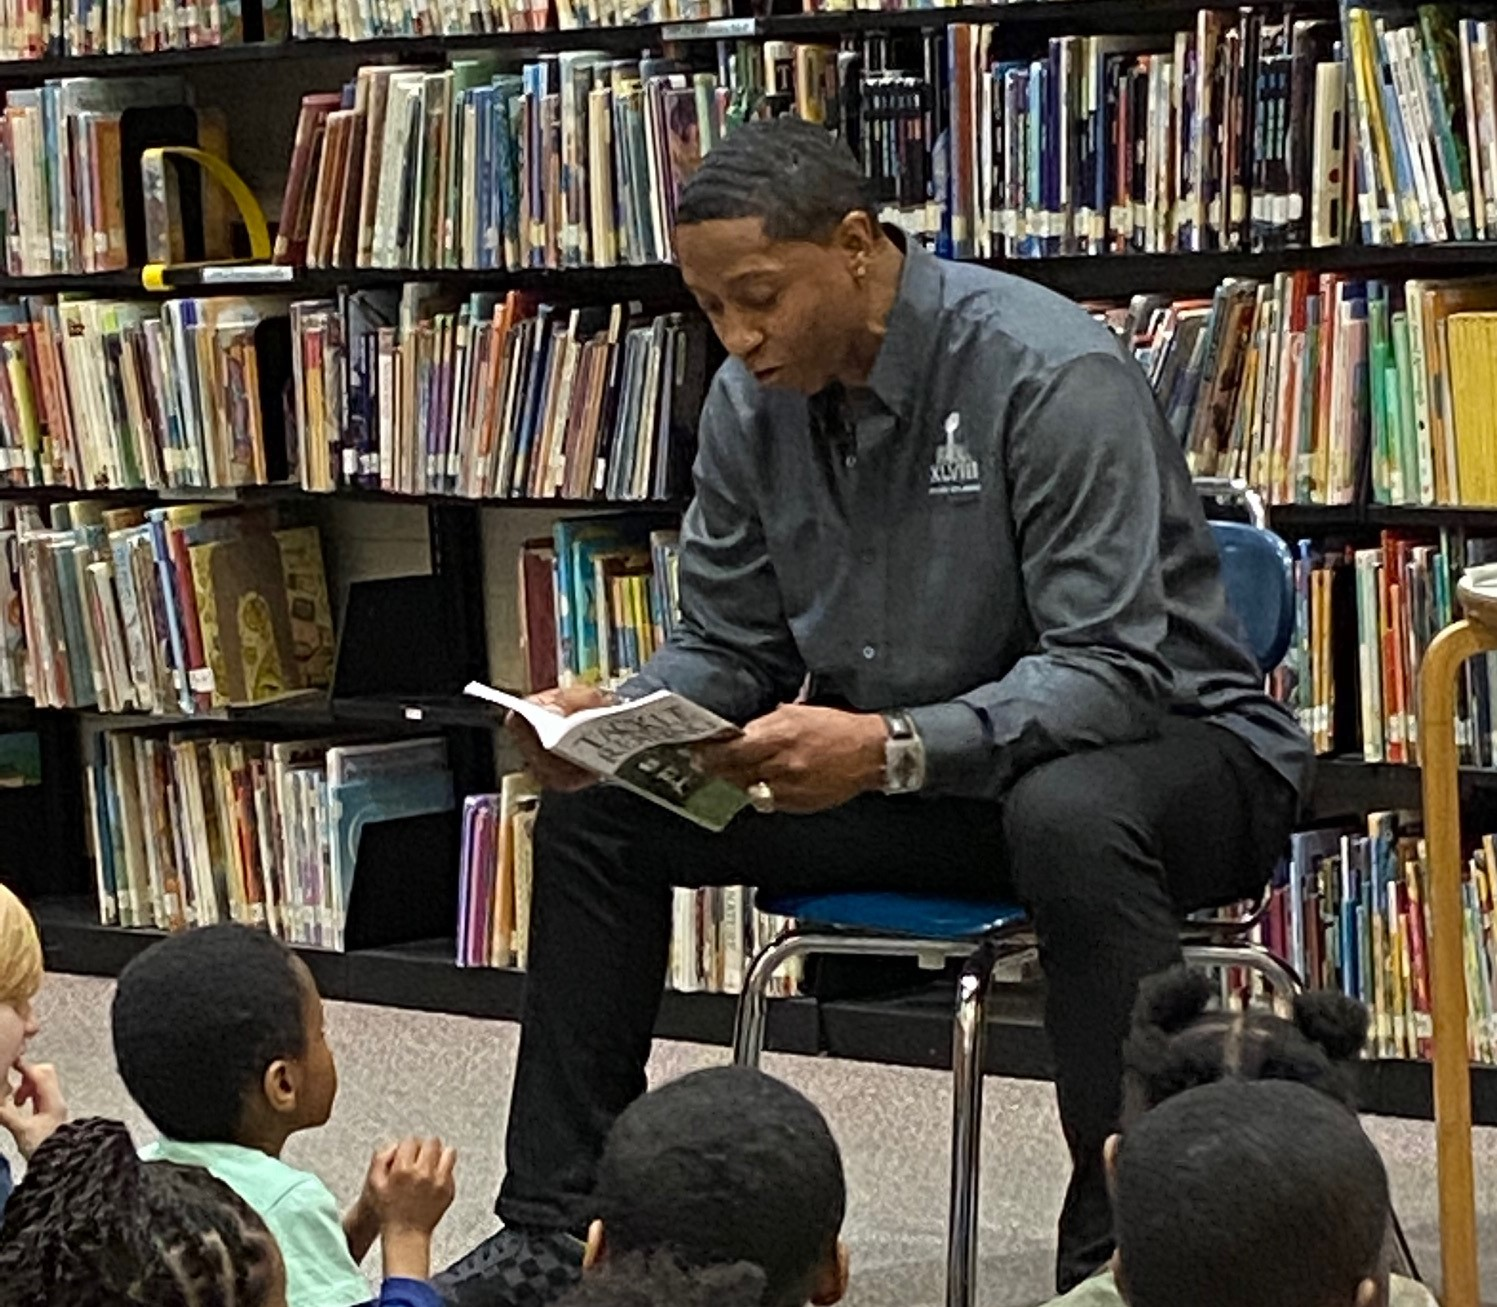 Scooter McGruder Tackles Reading in the Heights Schools